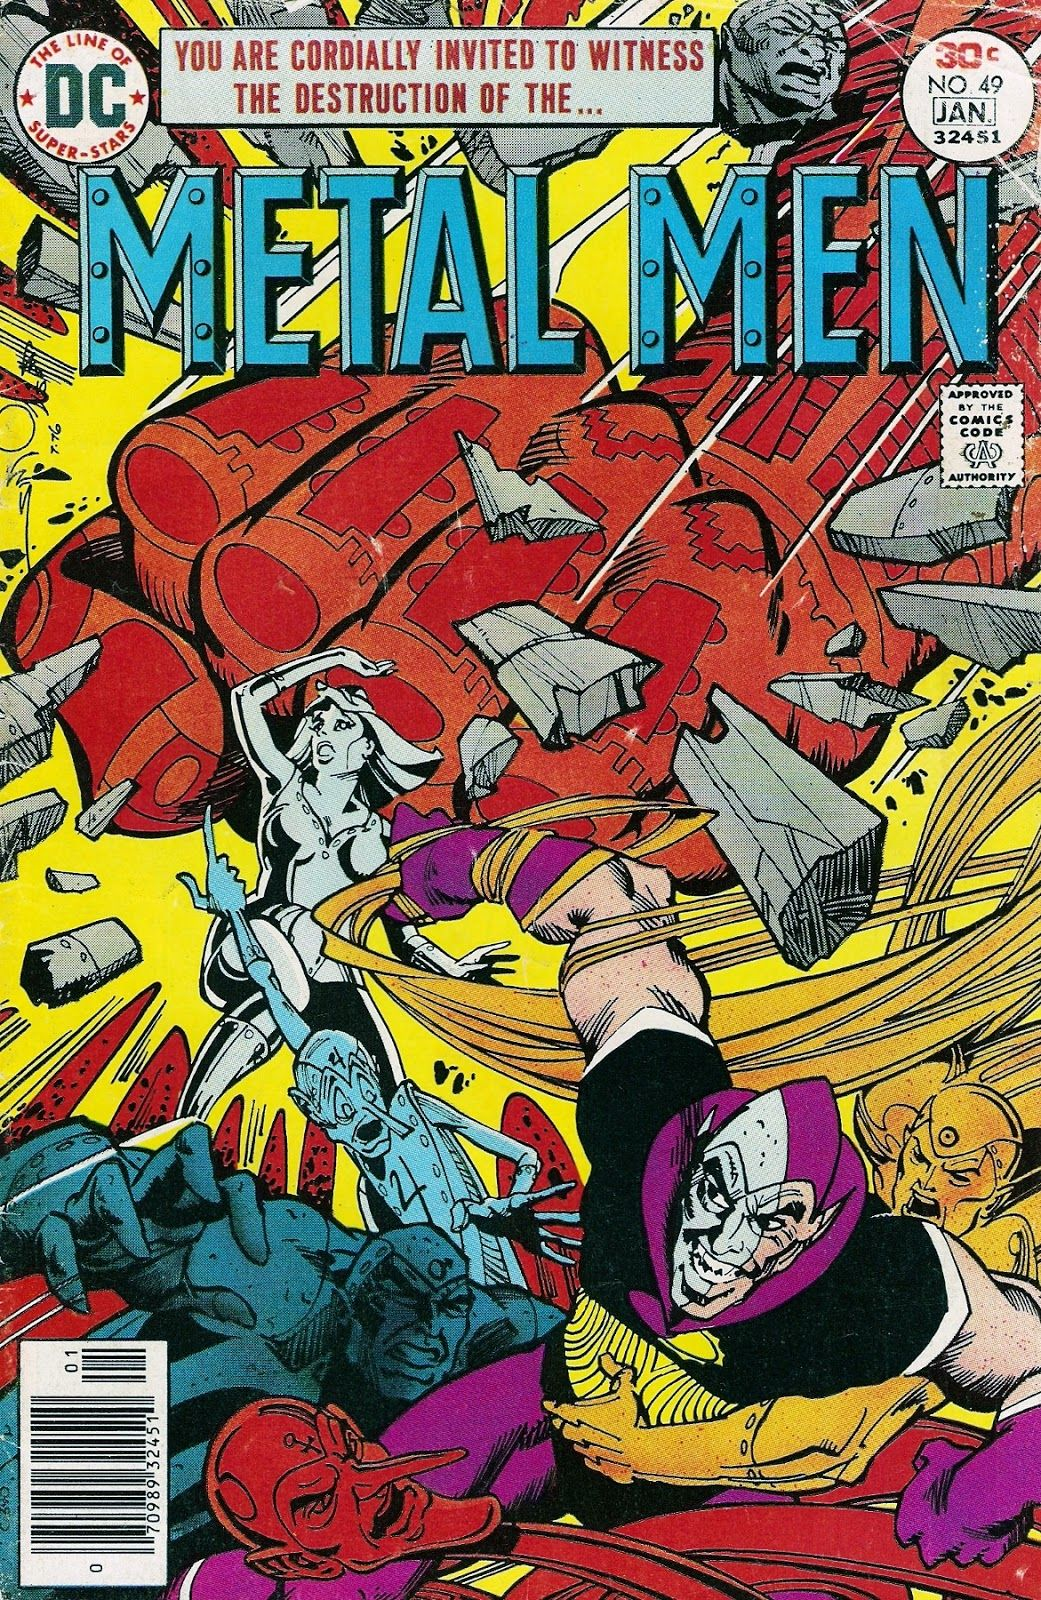 """Diversions of the Groovy Kind: Metal Mondays: """"The Dark God Cometh"""" by Pasko and Simonson"""